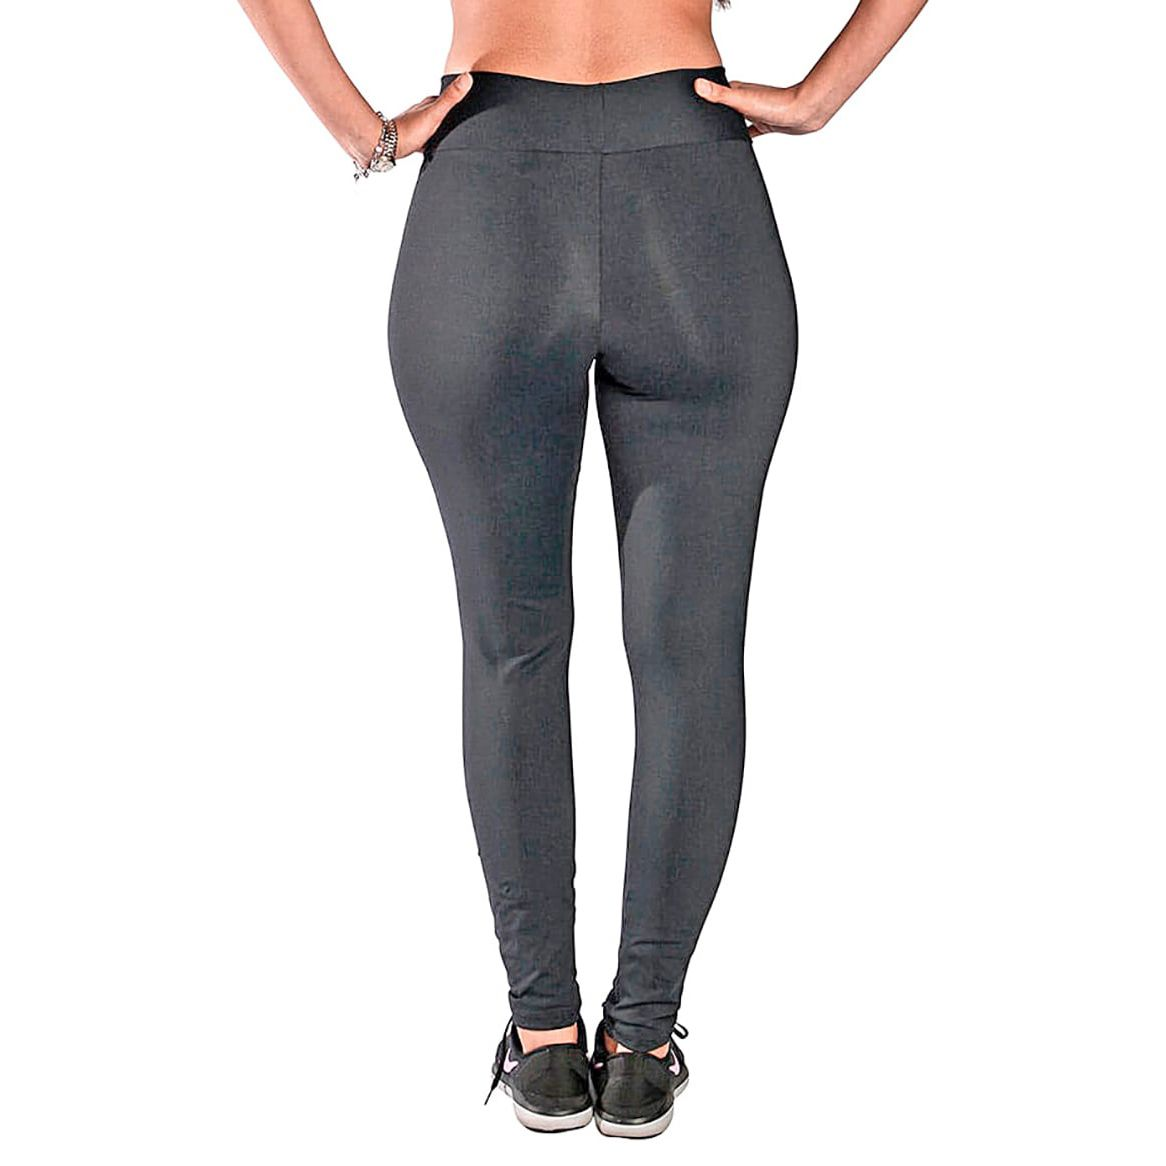 Calça Legging com Cós Alto New Zealand Preto